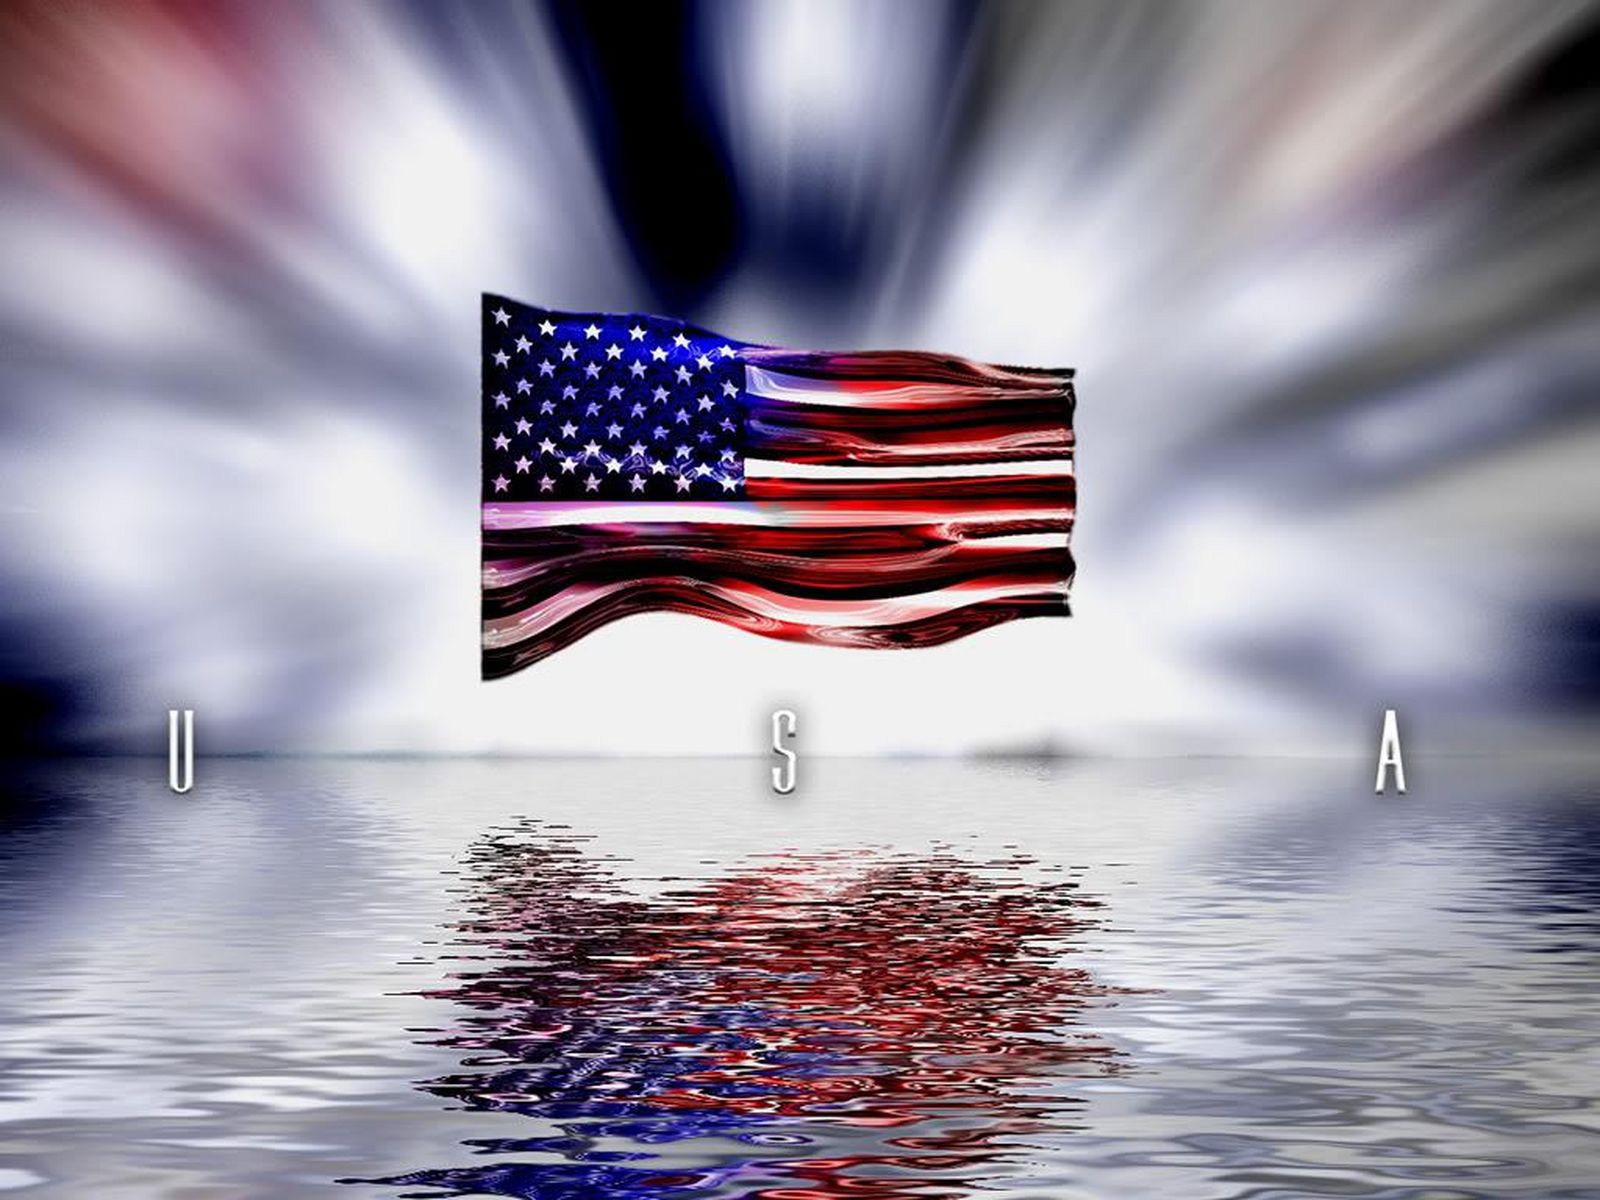 American flag wallpapers download latest wallpapers background 1600x1200